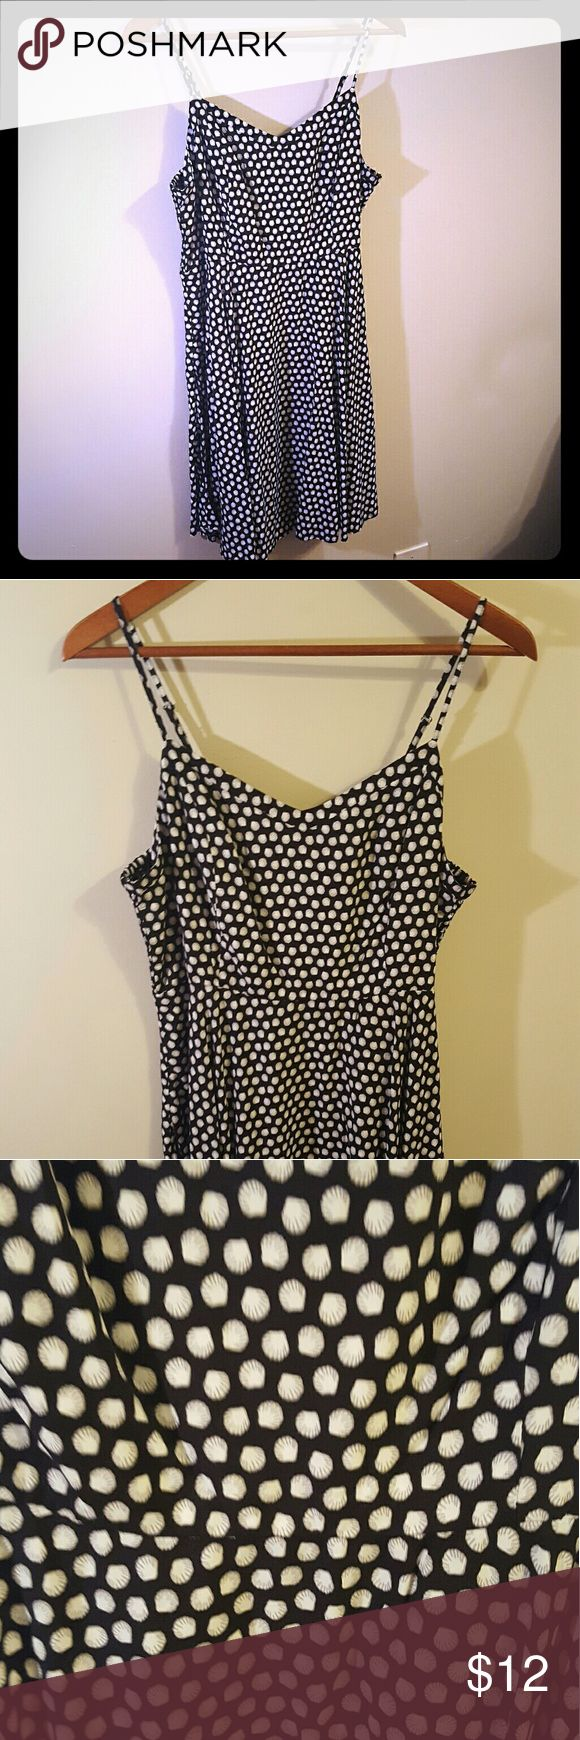 Strappy sundress Black and white strappy sundress. From far away, it looks like white polka dots... up close they are tiny seashells! Adjustable straps, v neck, elastic waist, zip up back. So flattering, a best seller at Old Navy. Never worn... NWT! Size says L Petite... I would still consider it a regular large, unless you are super tall. Old Navy Dresses Mini